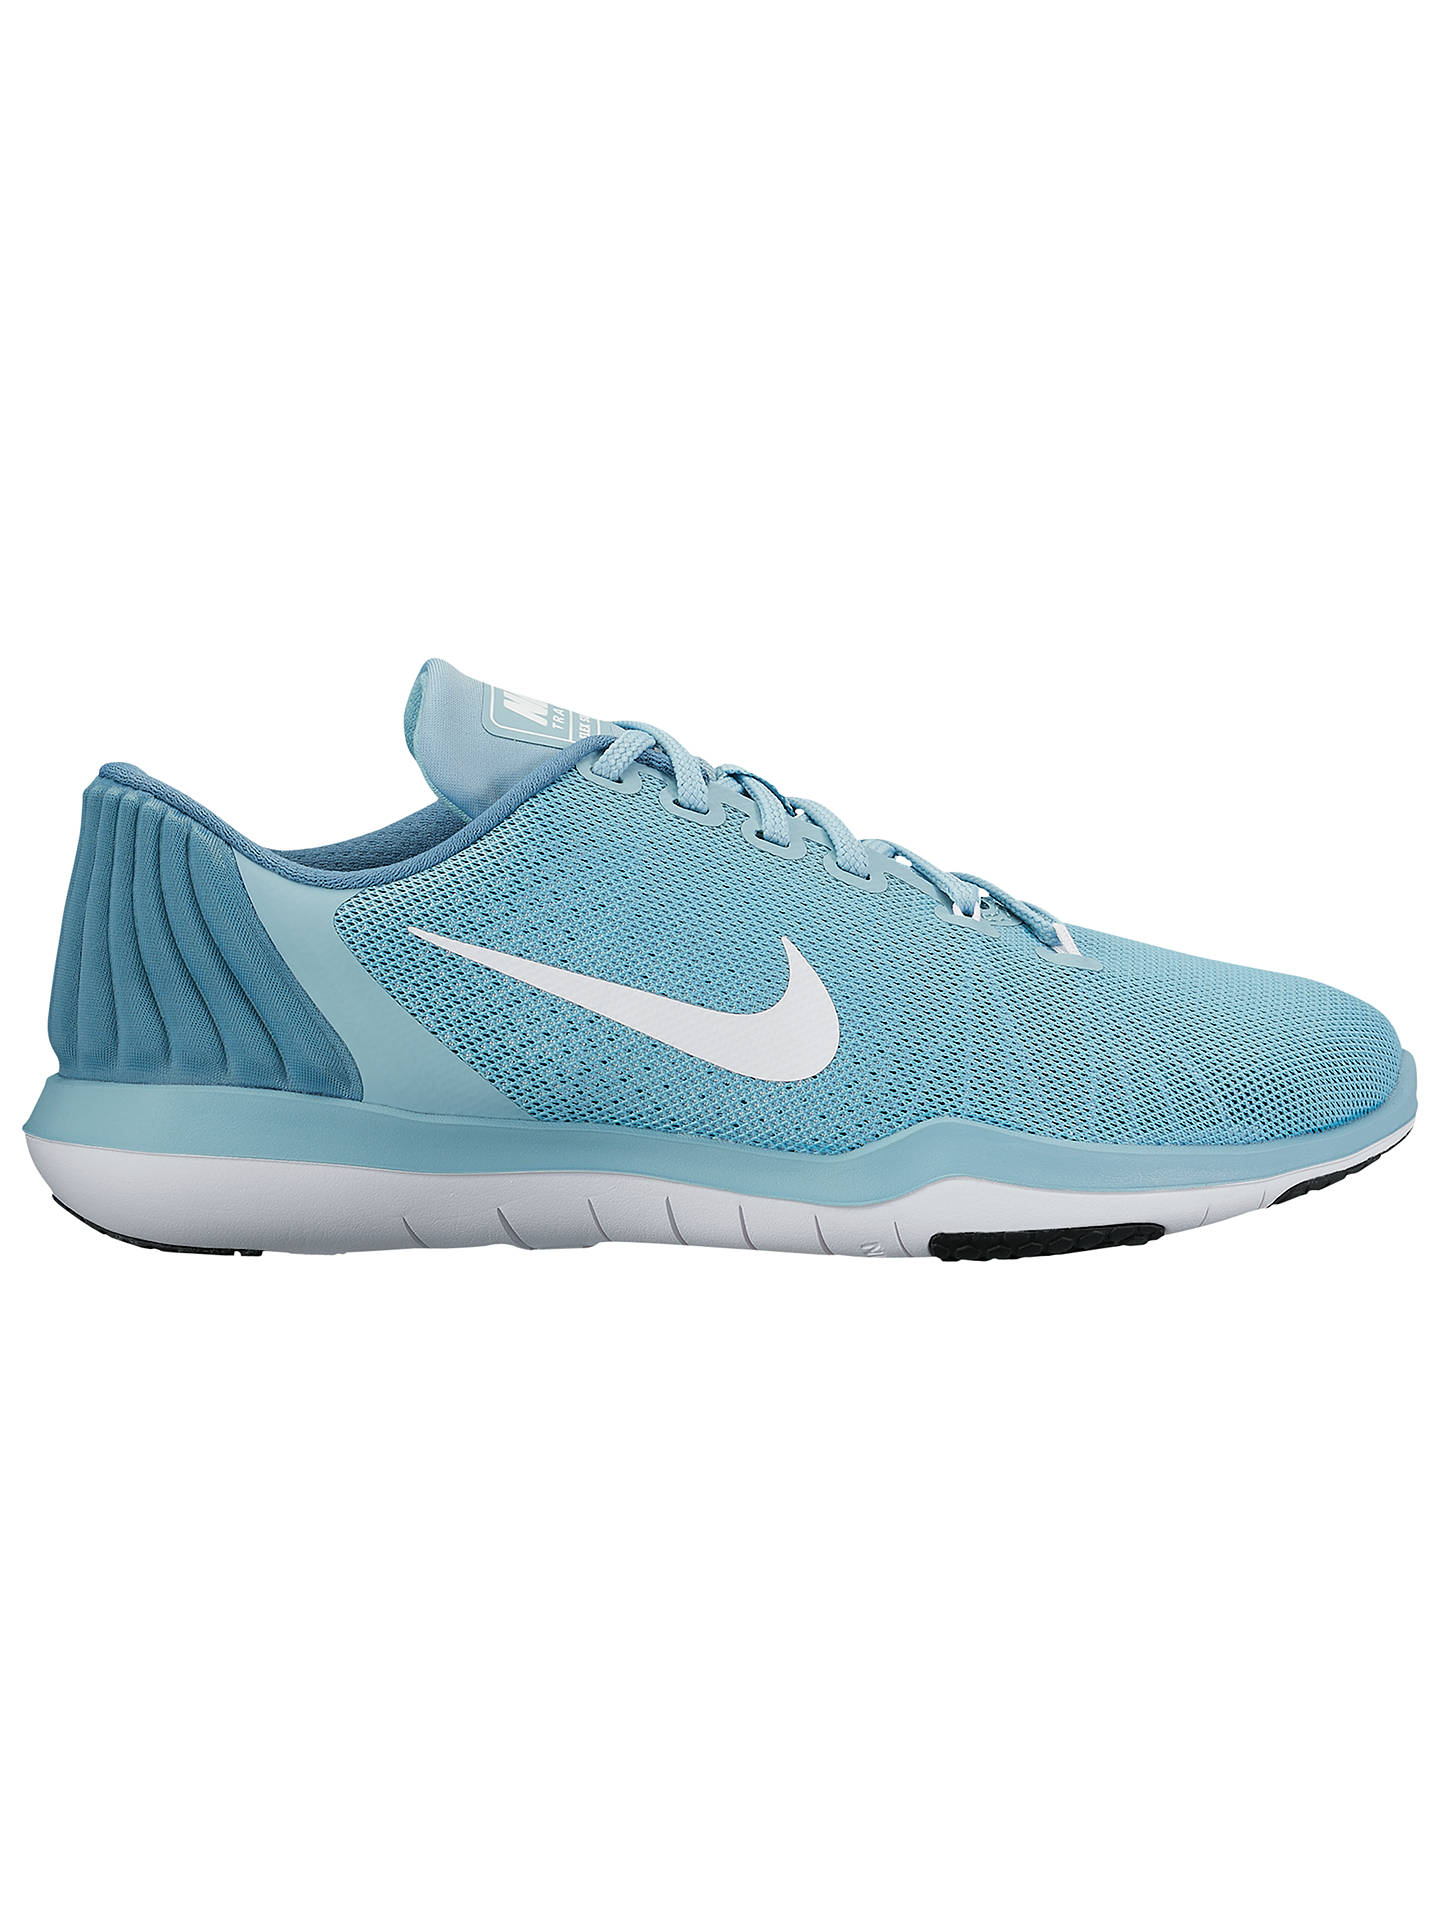 483fa1801a9fb Nike Flex Supreme TR 5 Women's Cross Trainers at John Lewis & Partners